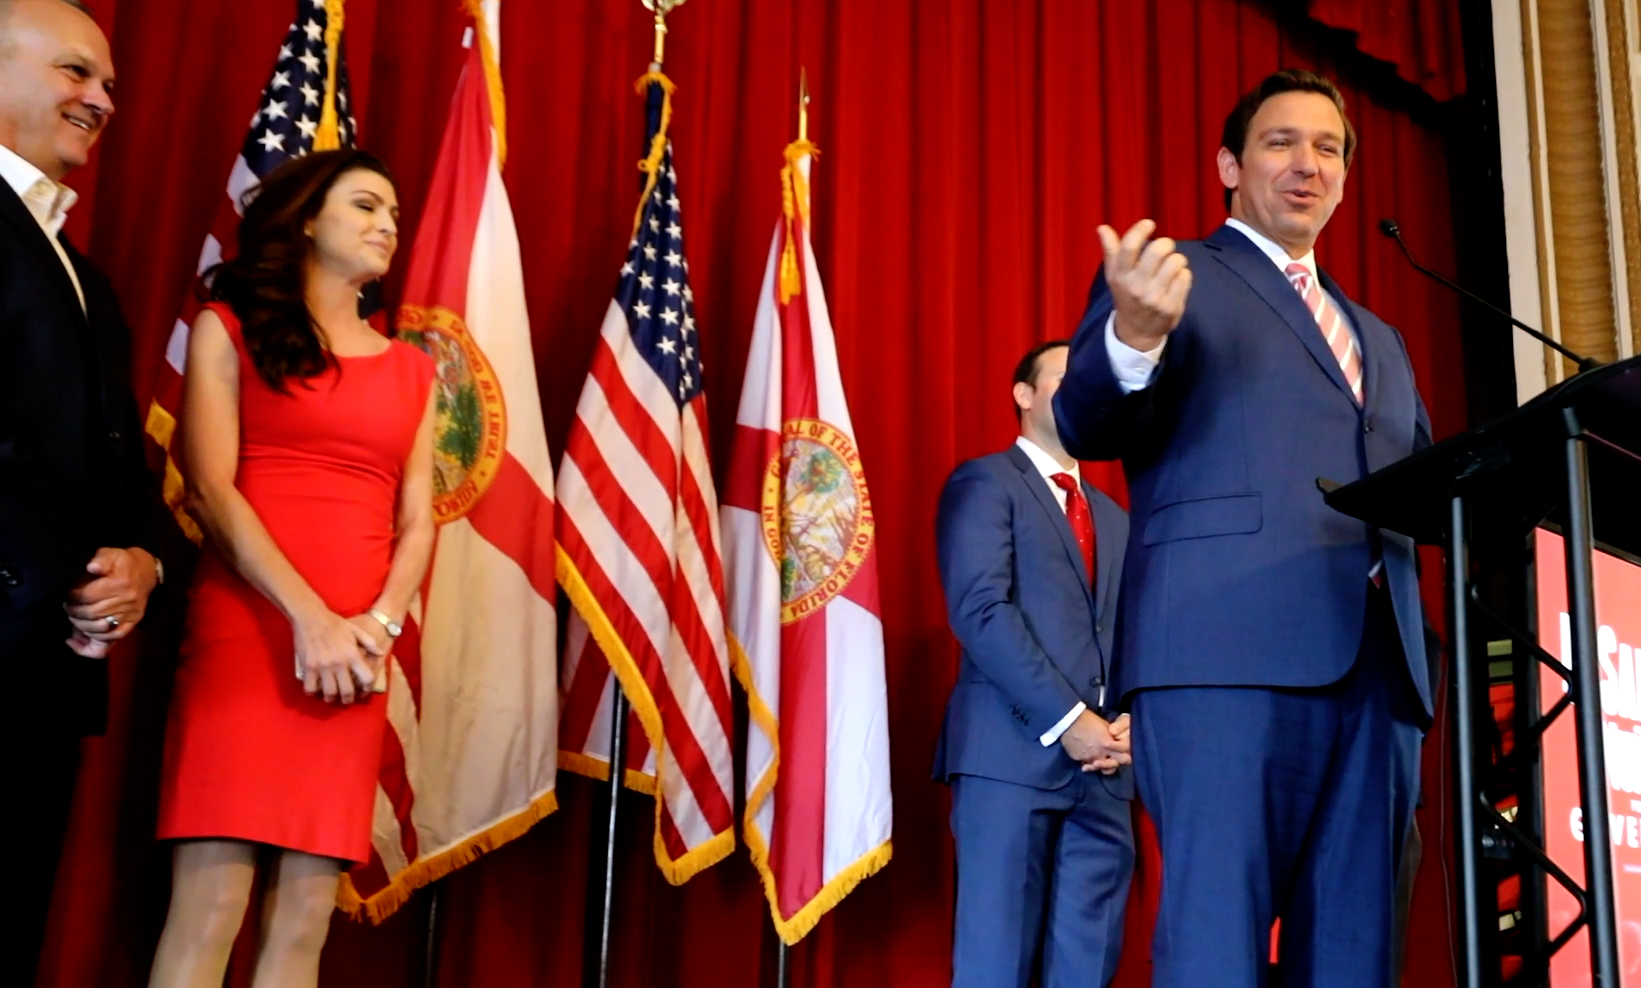 DeSantis-Rally-10-4-Tampa-for-Media-Release-e1546574638577.png